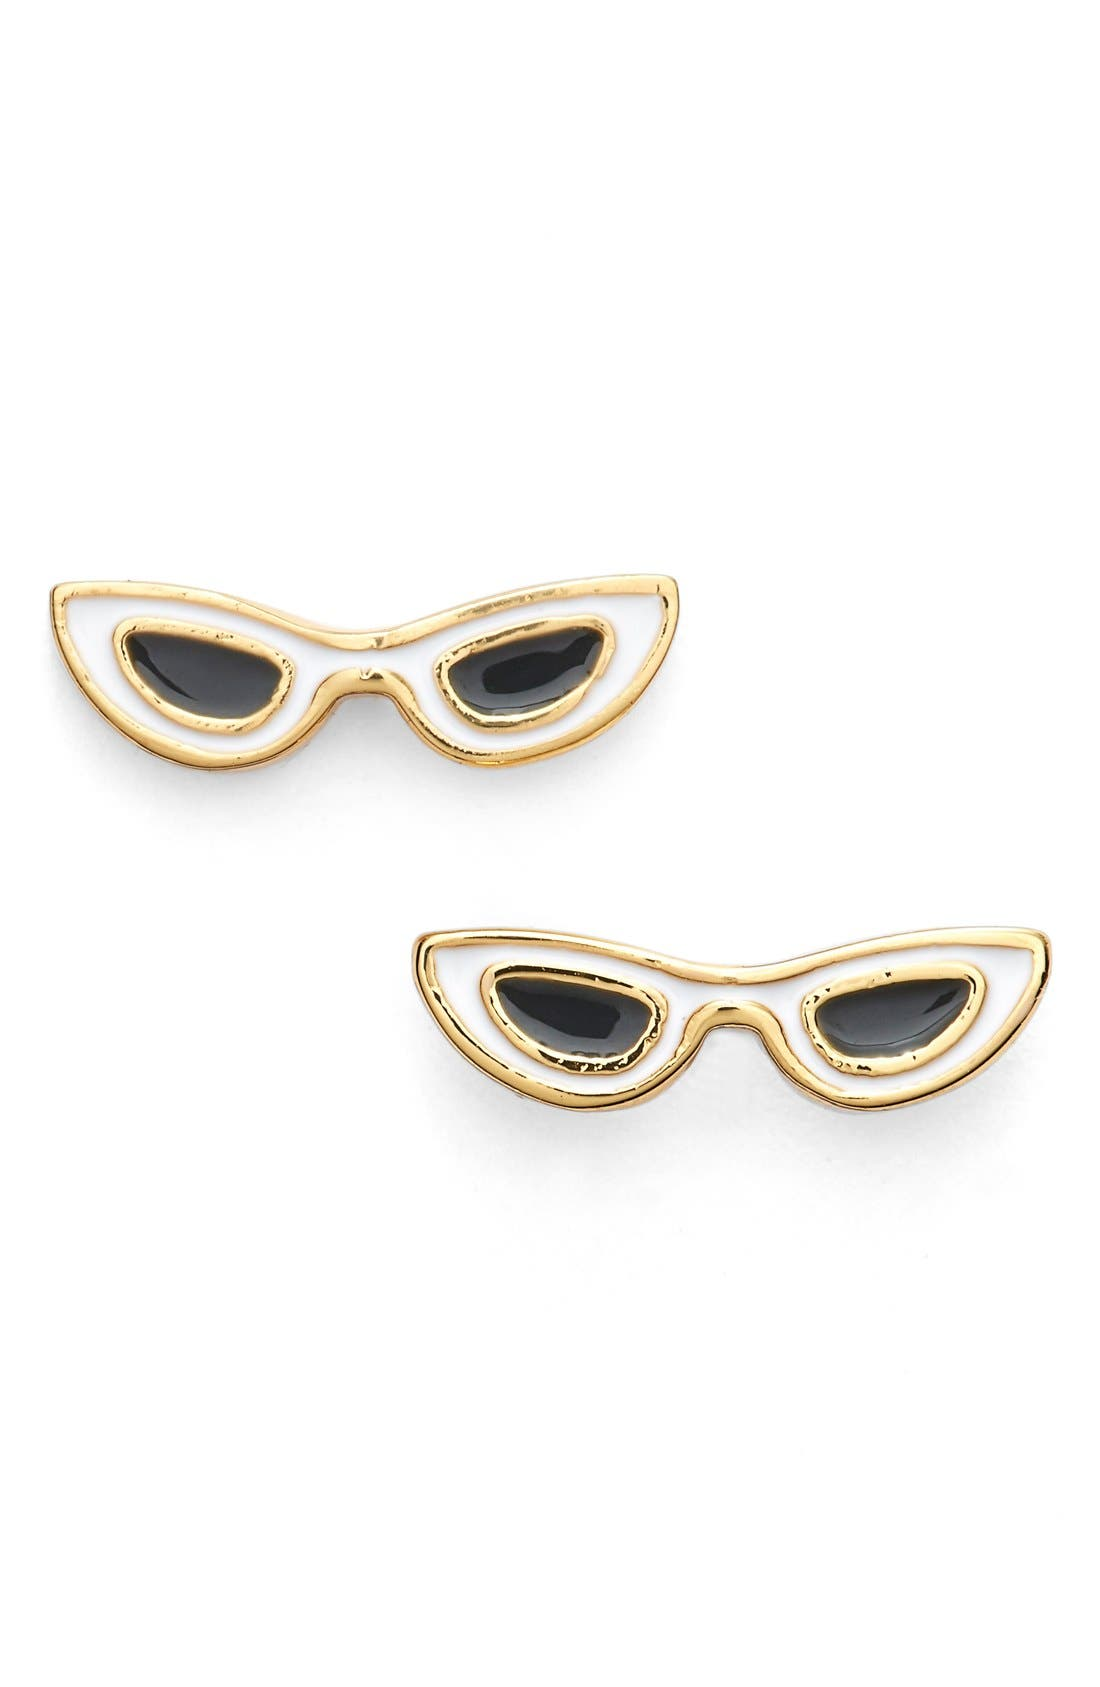 'in the shade' sunglass stud earrings,                             Main thumbnail 1, color,                             White Multi